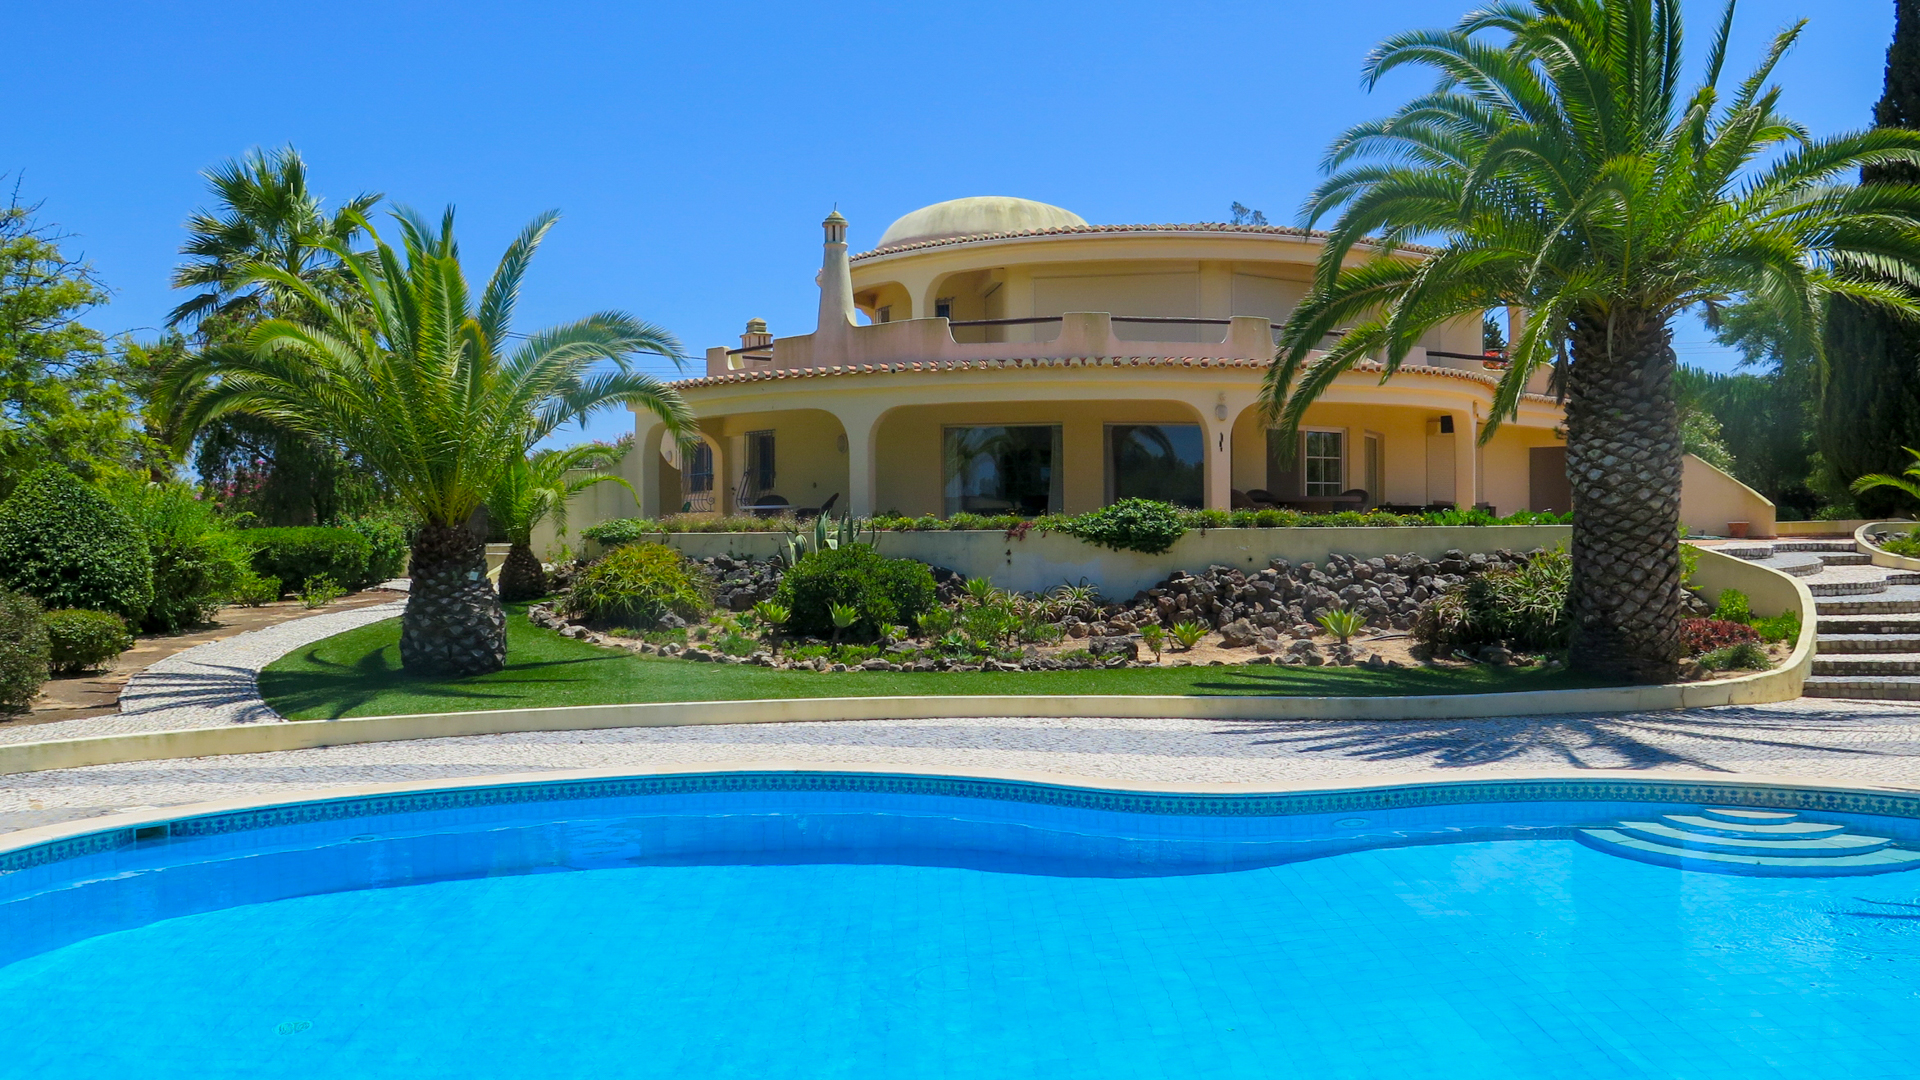 3+1 bedroom Moorish designed villa, near beaches and Carvoeiro, Lagoa, West Central Algarve | VM904 4 bedroom moorish style villa with pool, near Carvoeiro and Lagoa. It has an excellent location, close to beaches, golf and amenities, and it's perfect for permanent living or holidays.